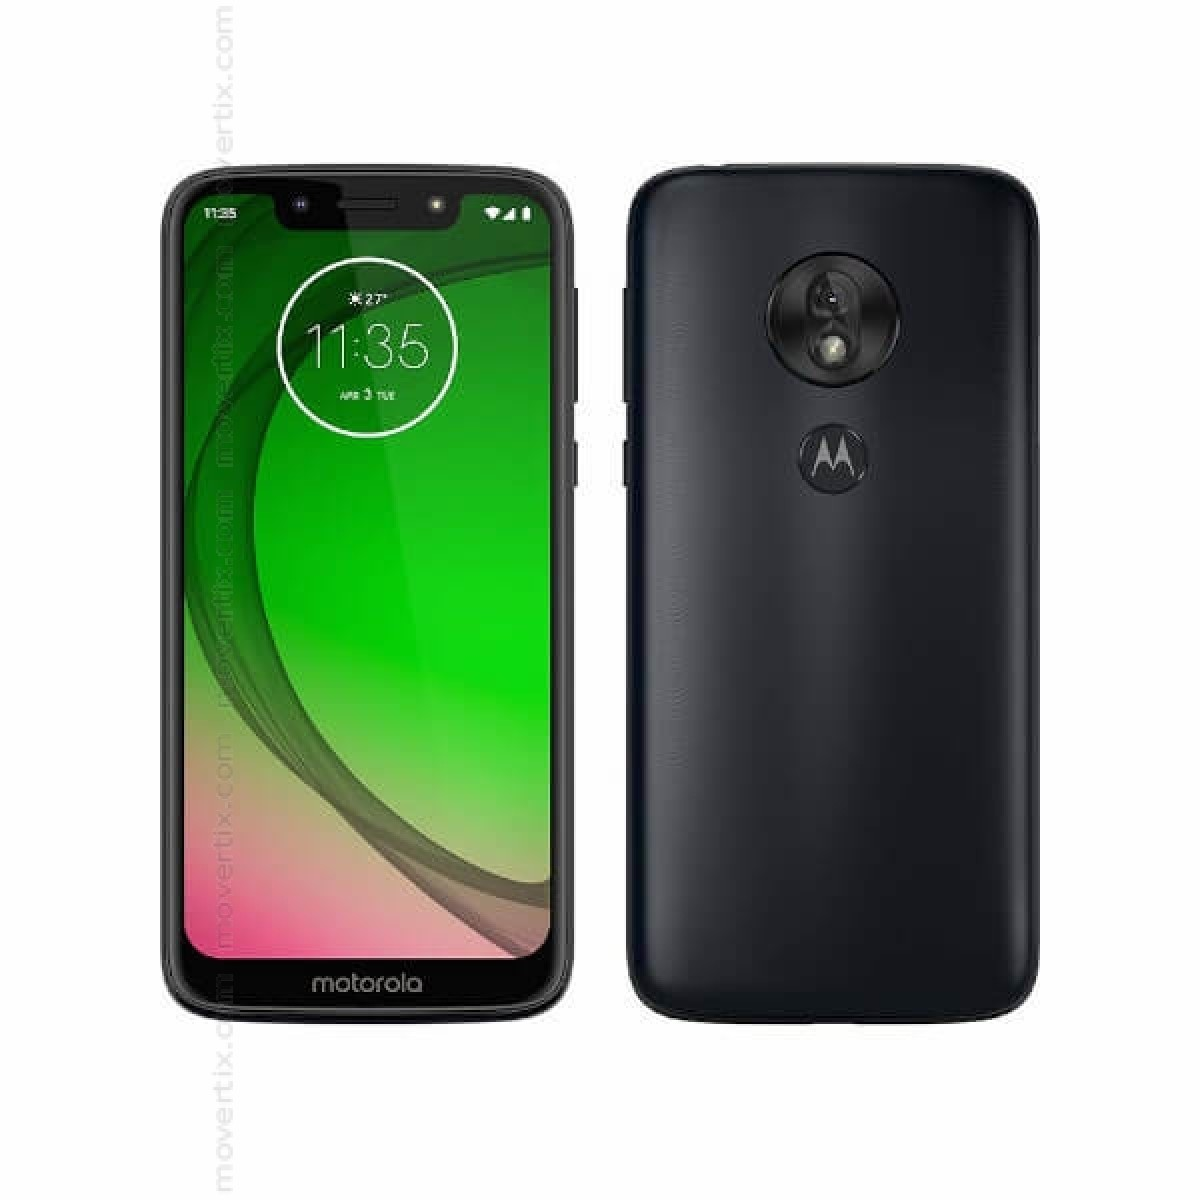 7b52318ee0 The Motorola Moto G7 Play in blue color is a Dual SIM smartphone with 32GB  of storage and 2GB of RAM, 5.7-inch IPS LCD screen in HD+ resolution, ...